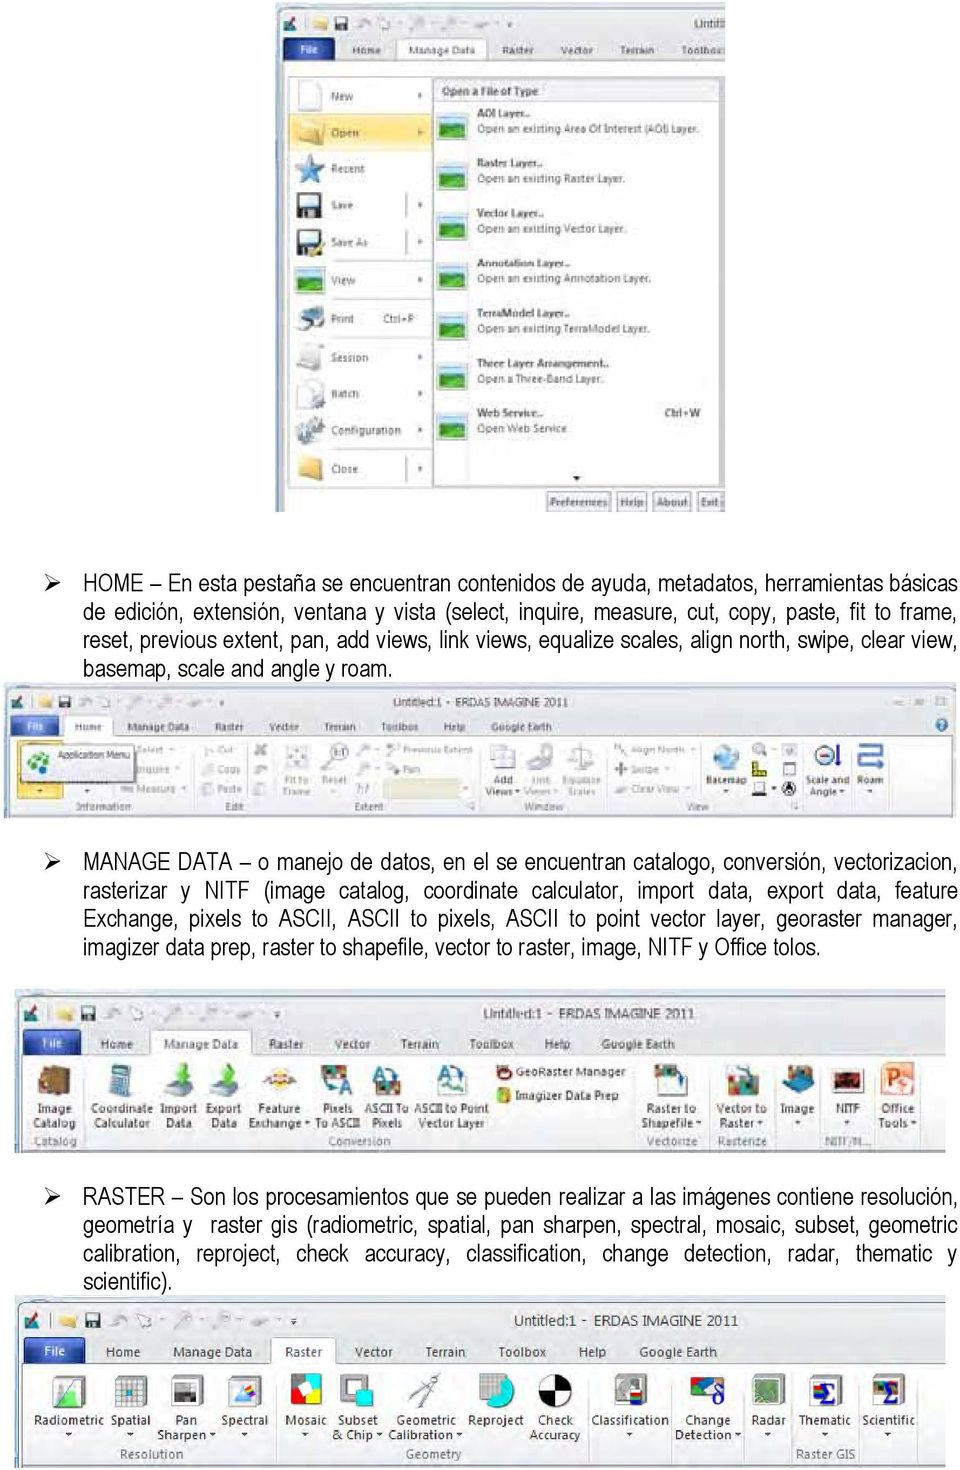 MANAGE DATA o manejo de datos, en el se encuentran catalogo, conversión, vectorizacion, rasterizar y NITF (image catalog, coordinate calculator, import data, export data, feature Exchange, pixels to